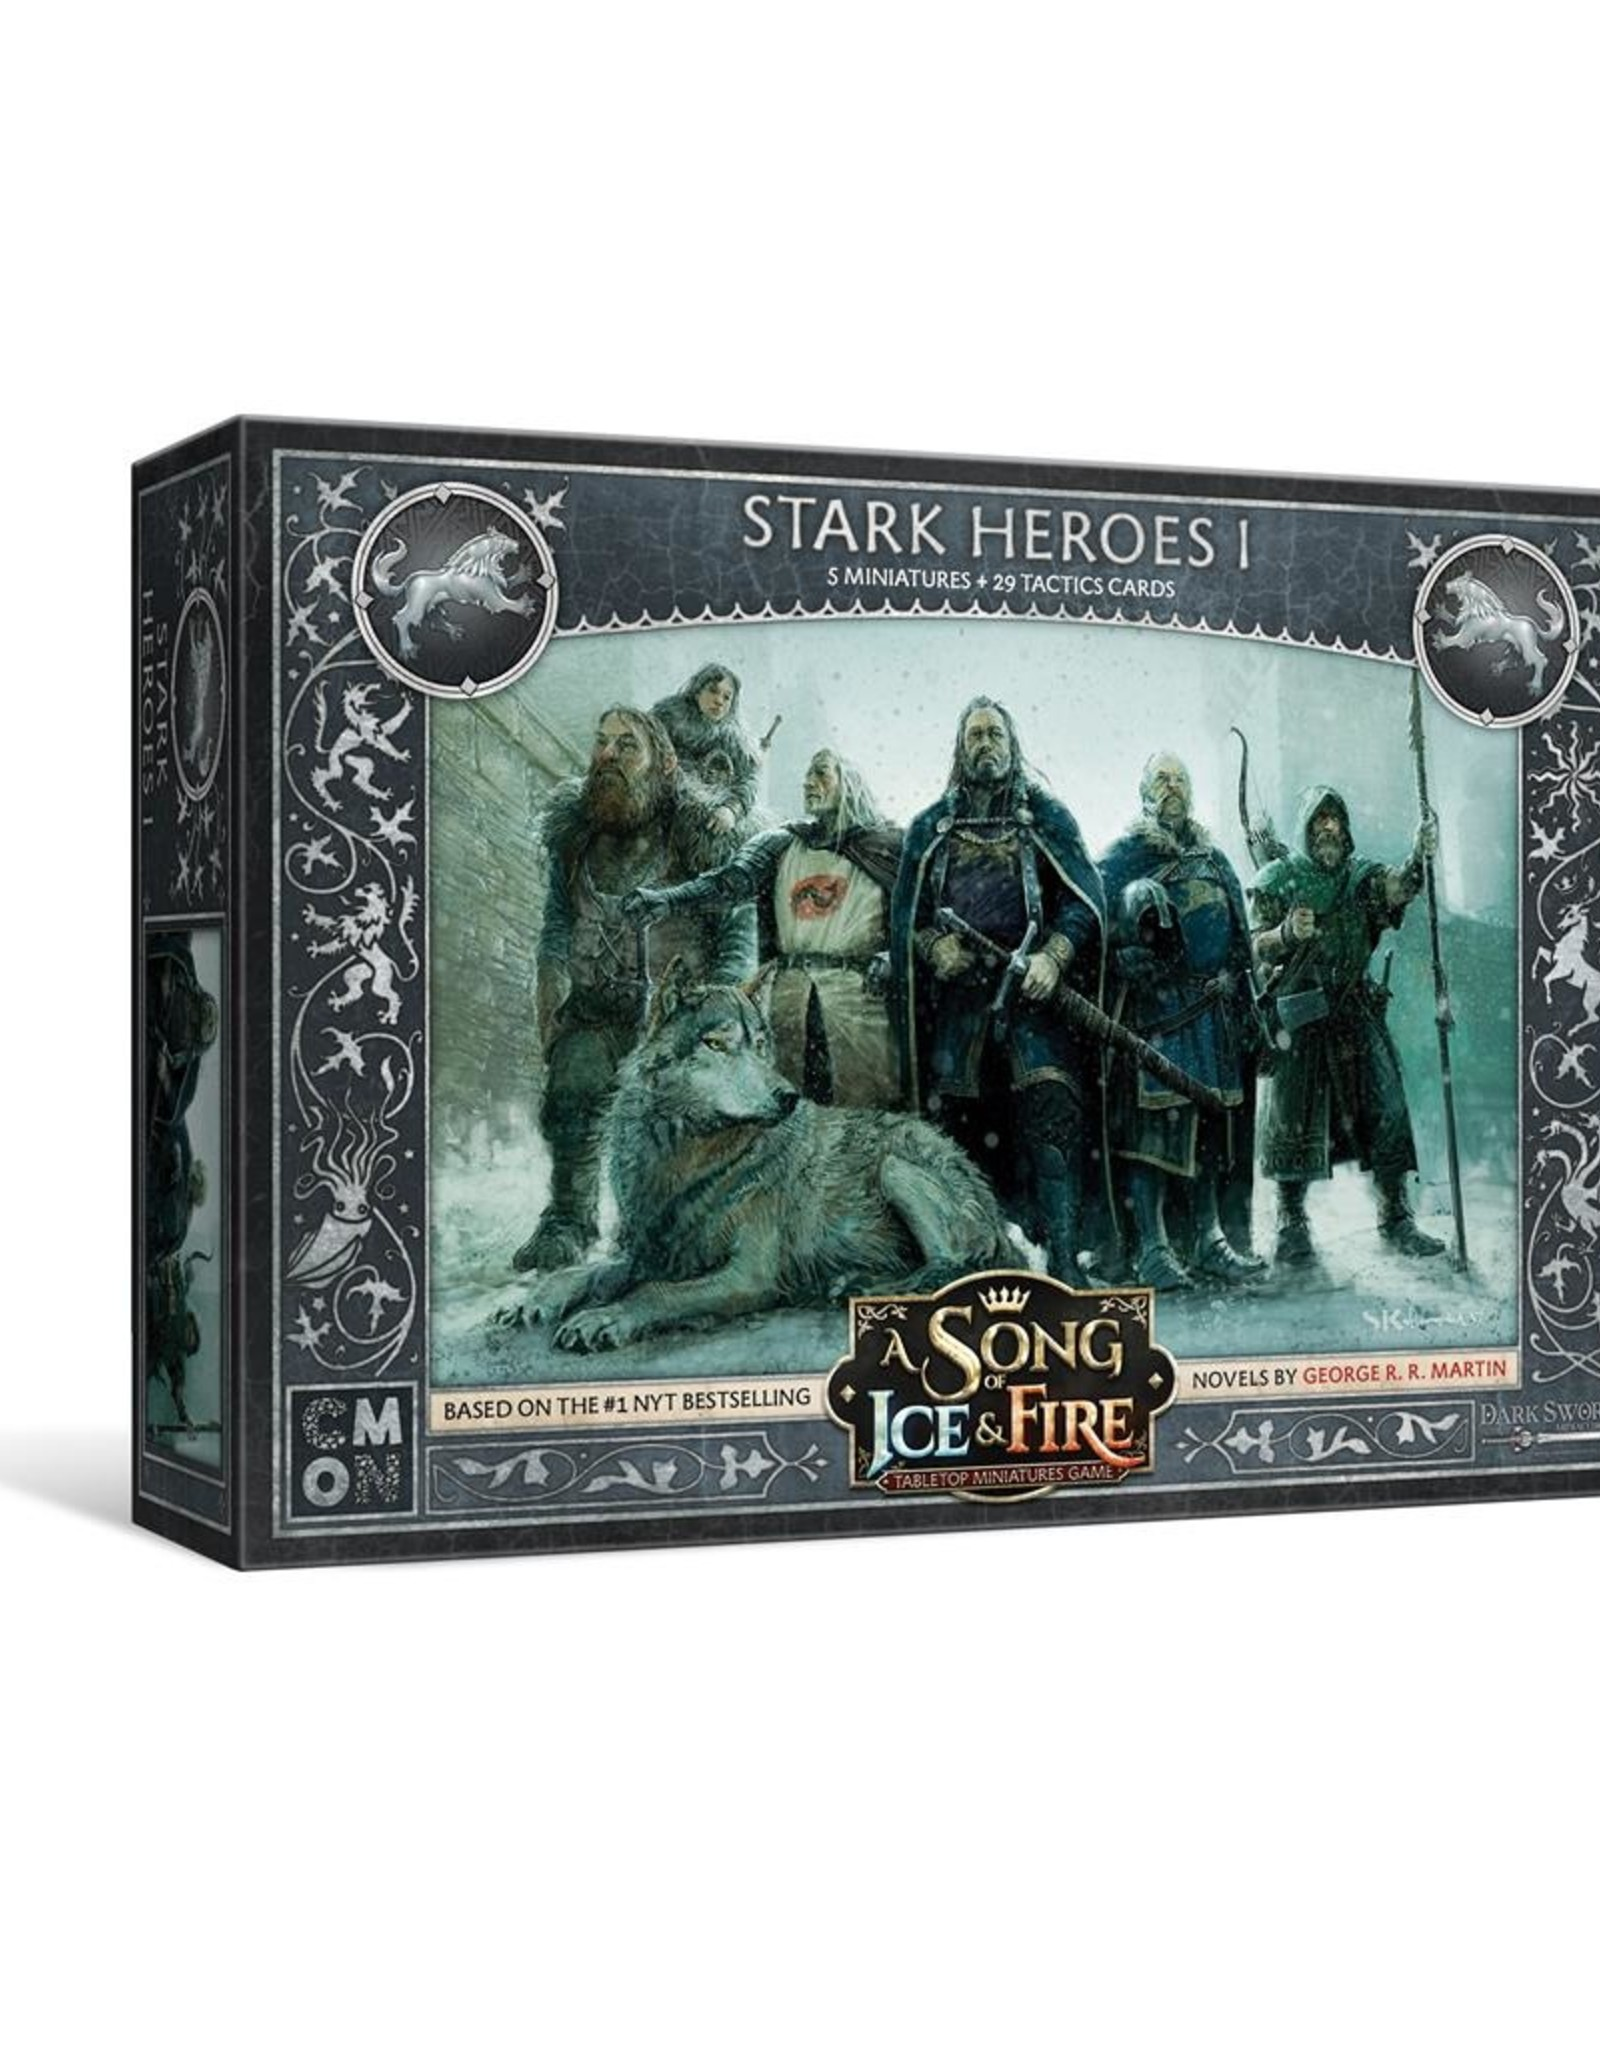 Cool Mini or Not A Song of Ice and Fire Stark Heroes I